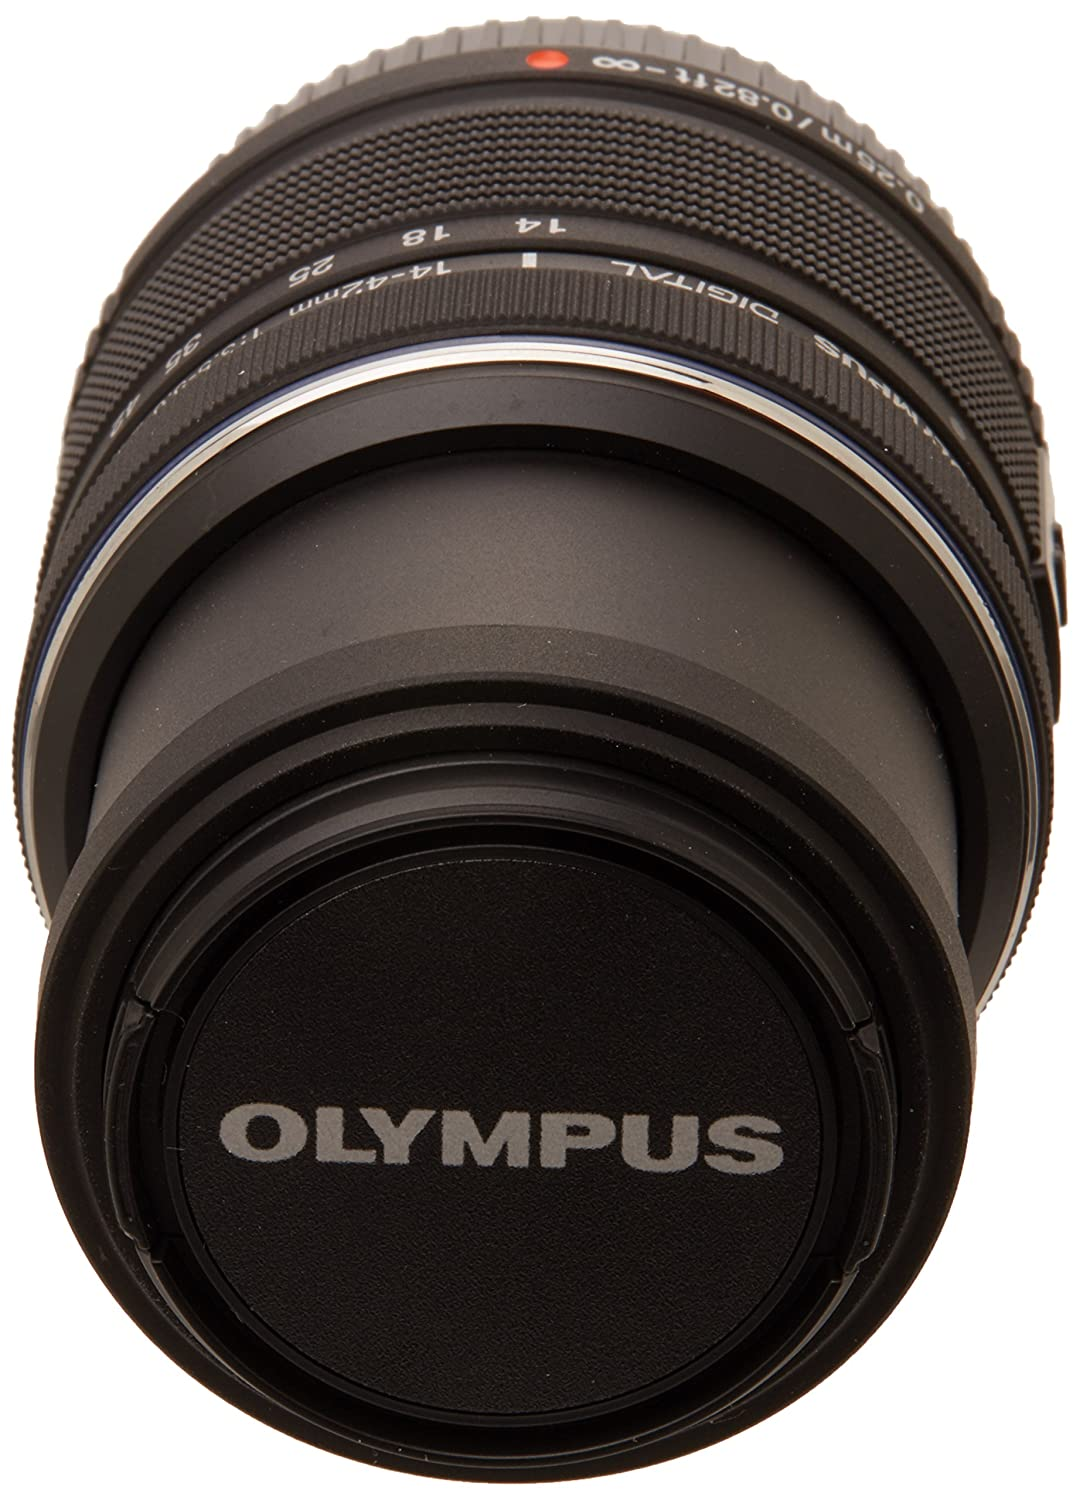 Olympus 14-42mm f/3.5-5.6 Ver. II R, Interchangeable Lens for Olympus / Panasonic Micro 4/3 Cameras, Black